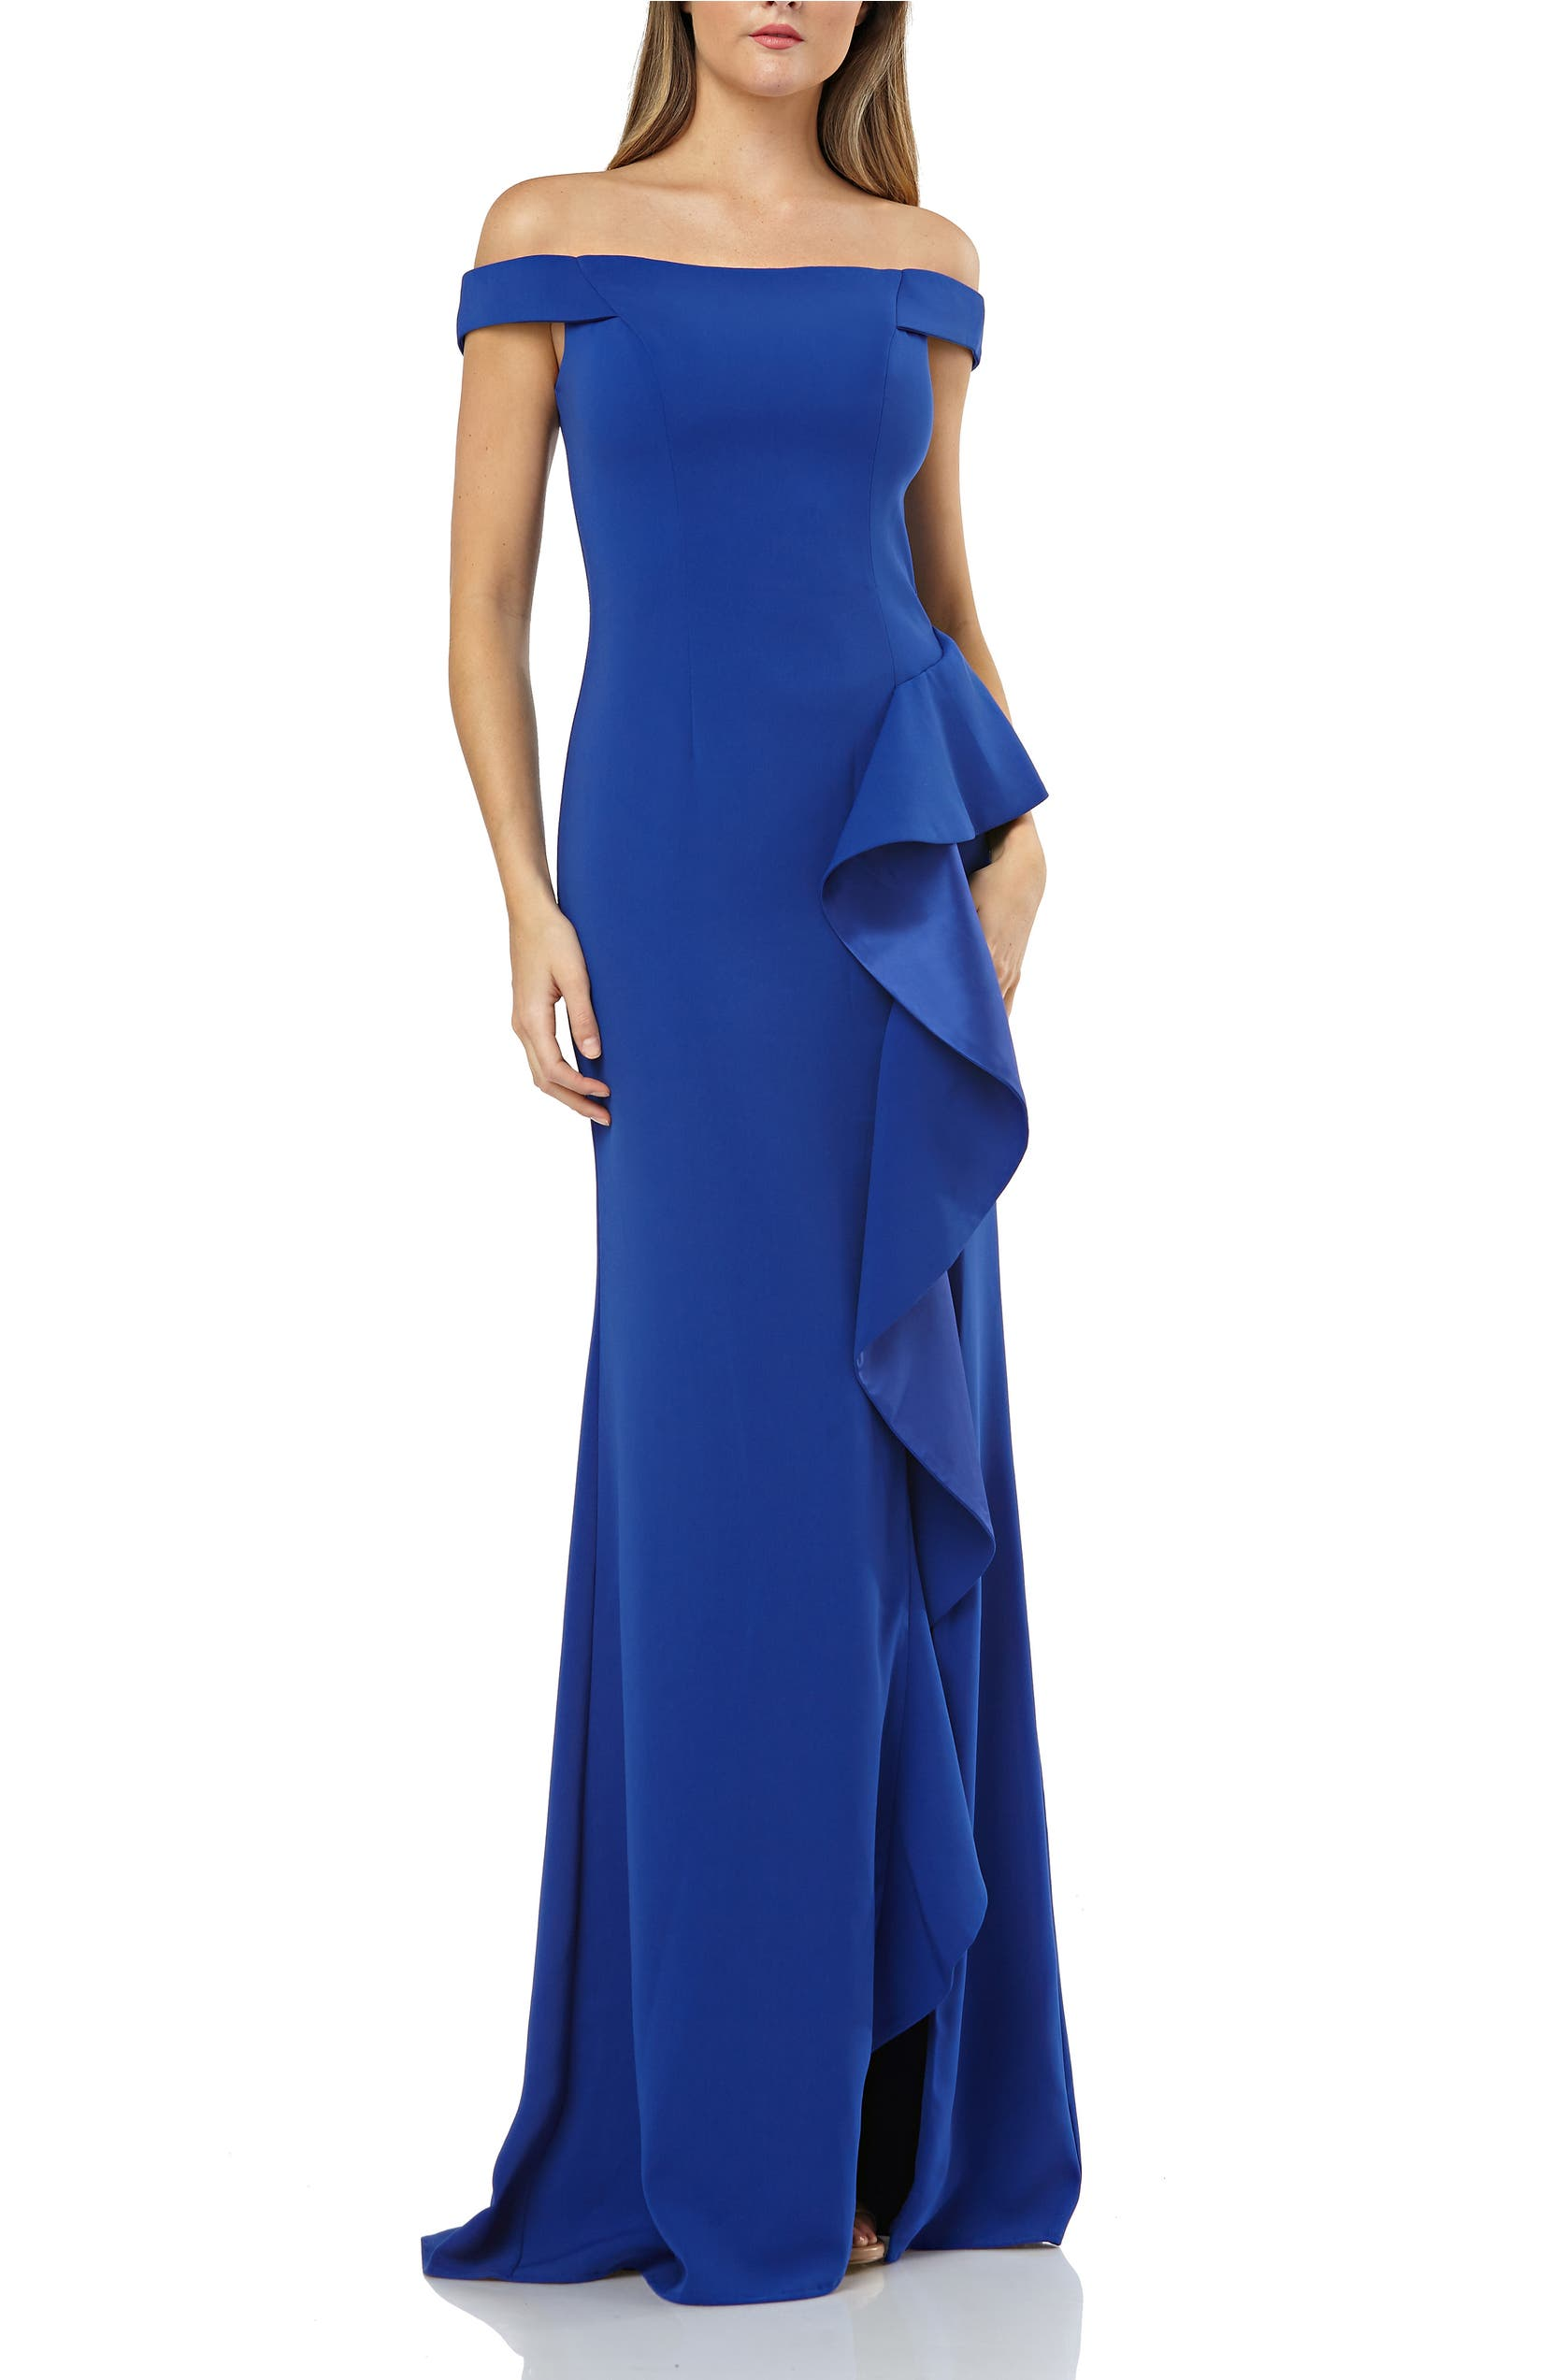 7d93d69189e7 Carmen Marc Valvo Infusion Ruffle Off the Shoulder Gown | Nordstrom